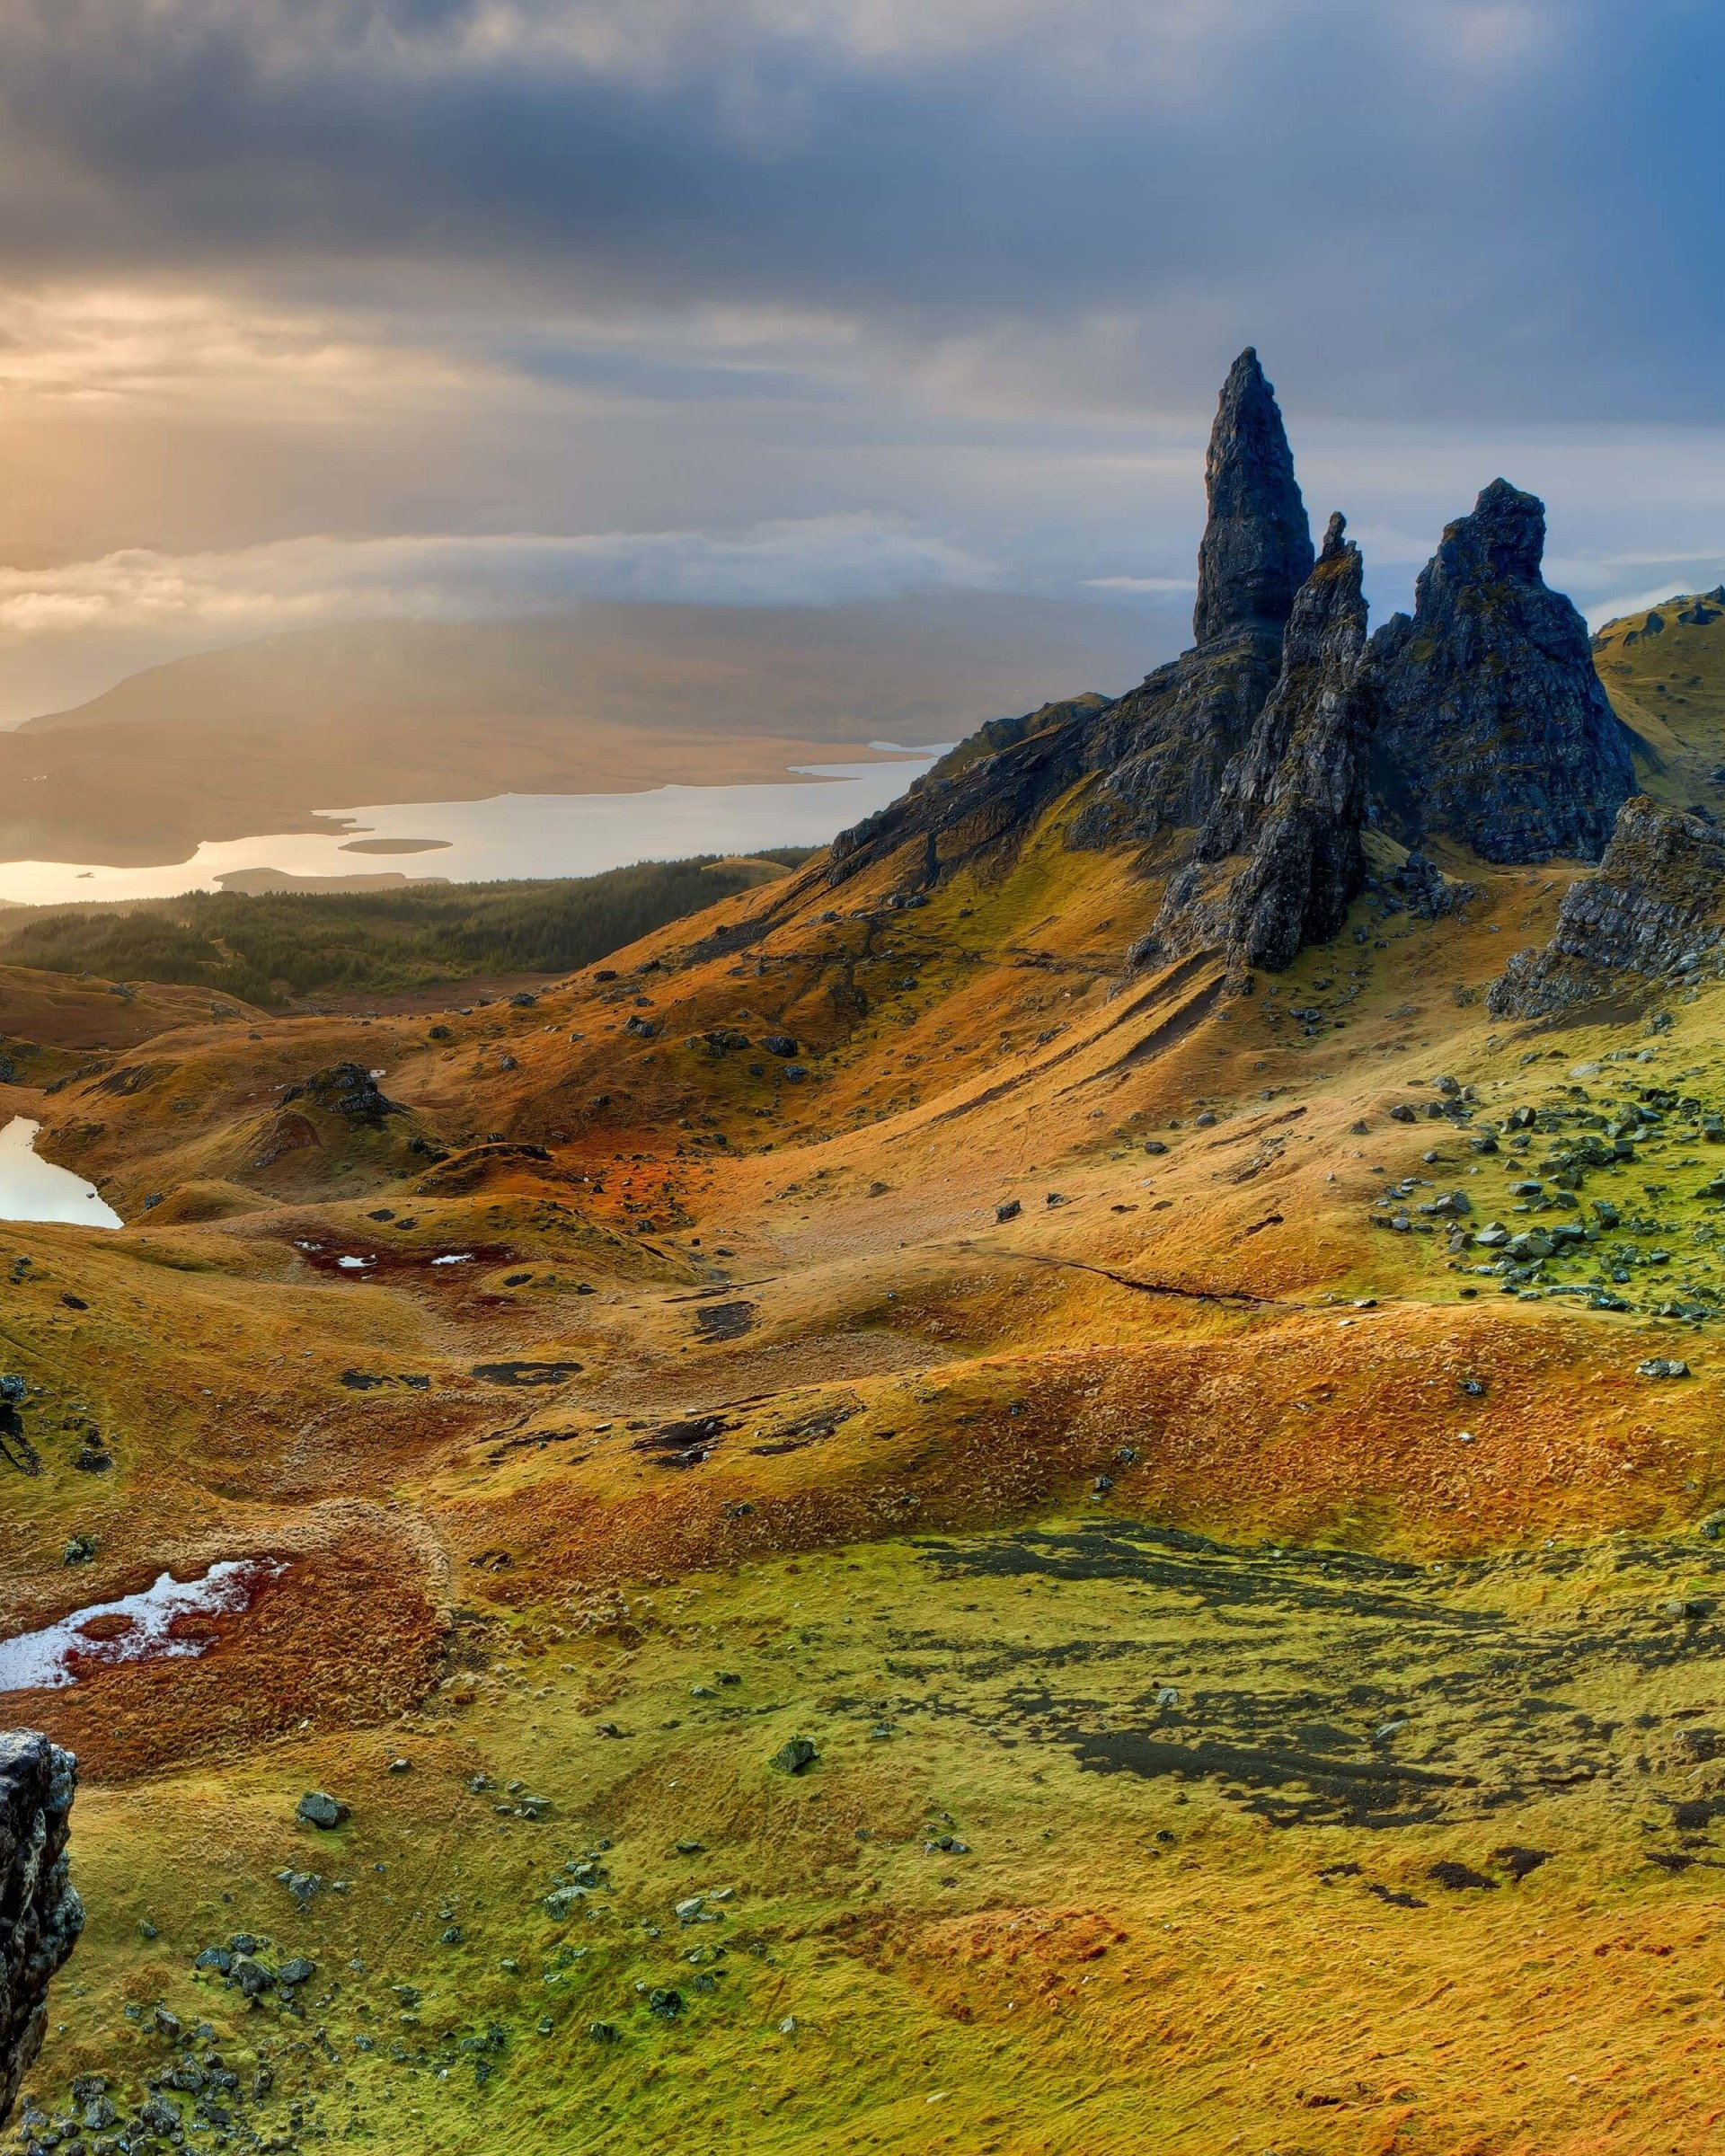 The Old Man of Storr, Isle of Skye, Scotland Wallpaper for Google Nexus 7